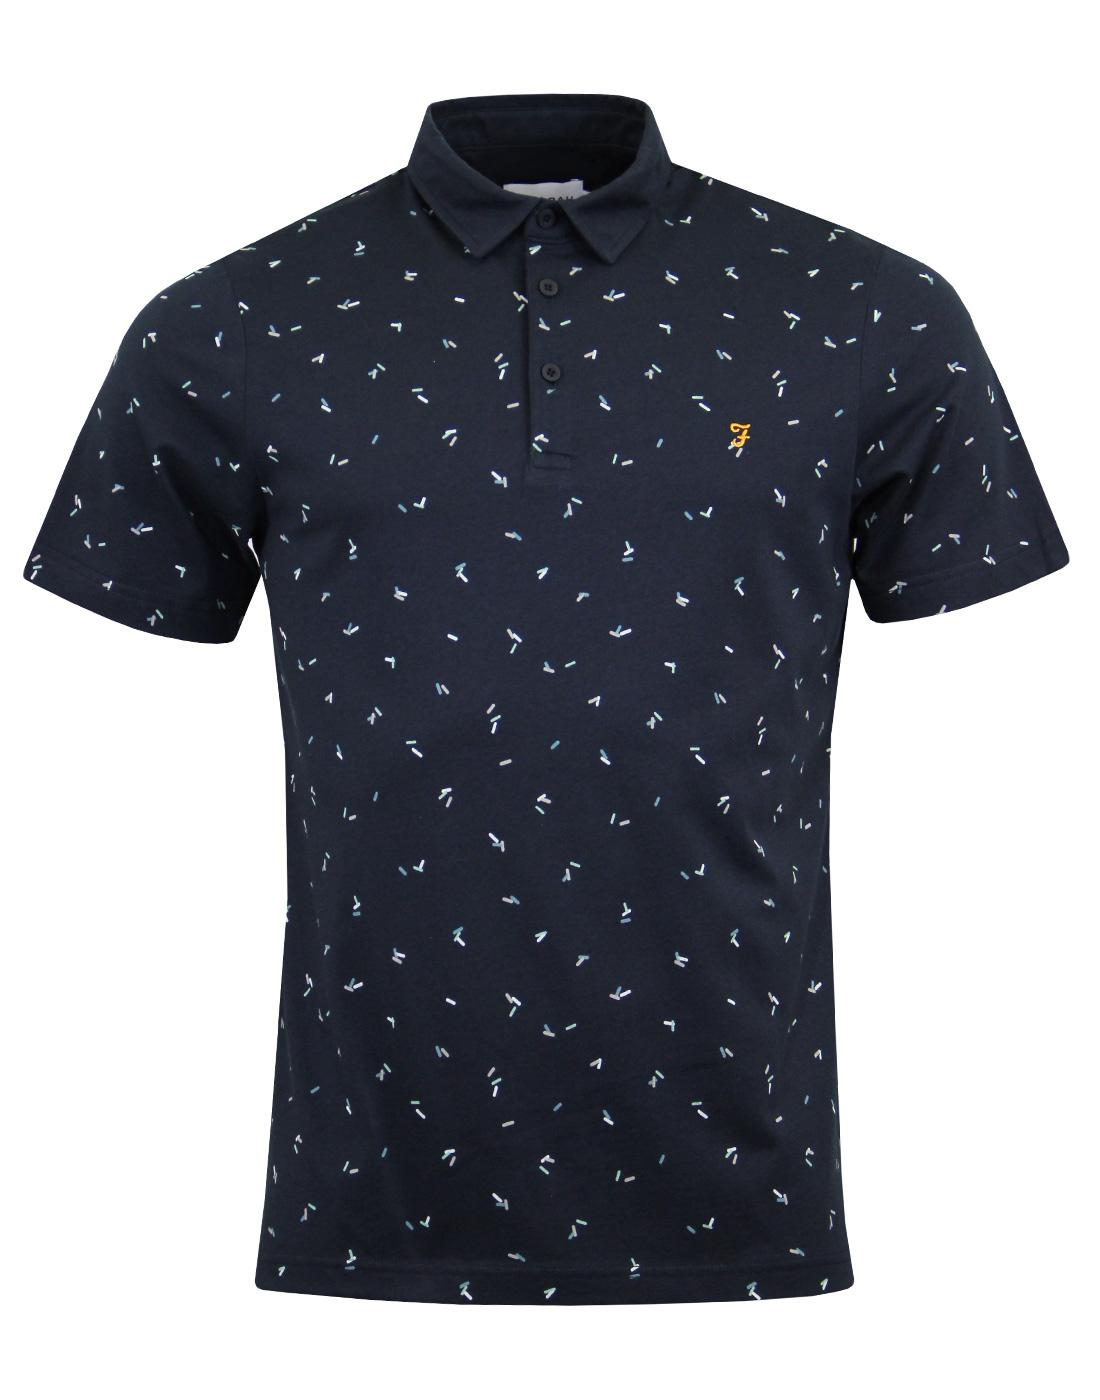 Chorlton FARAH Retro Mod Abstract Pill Print Polo